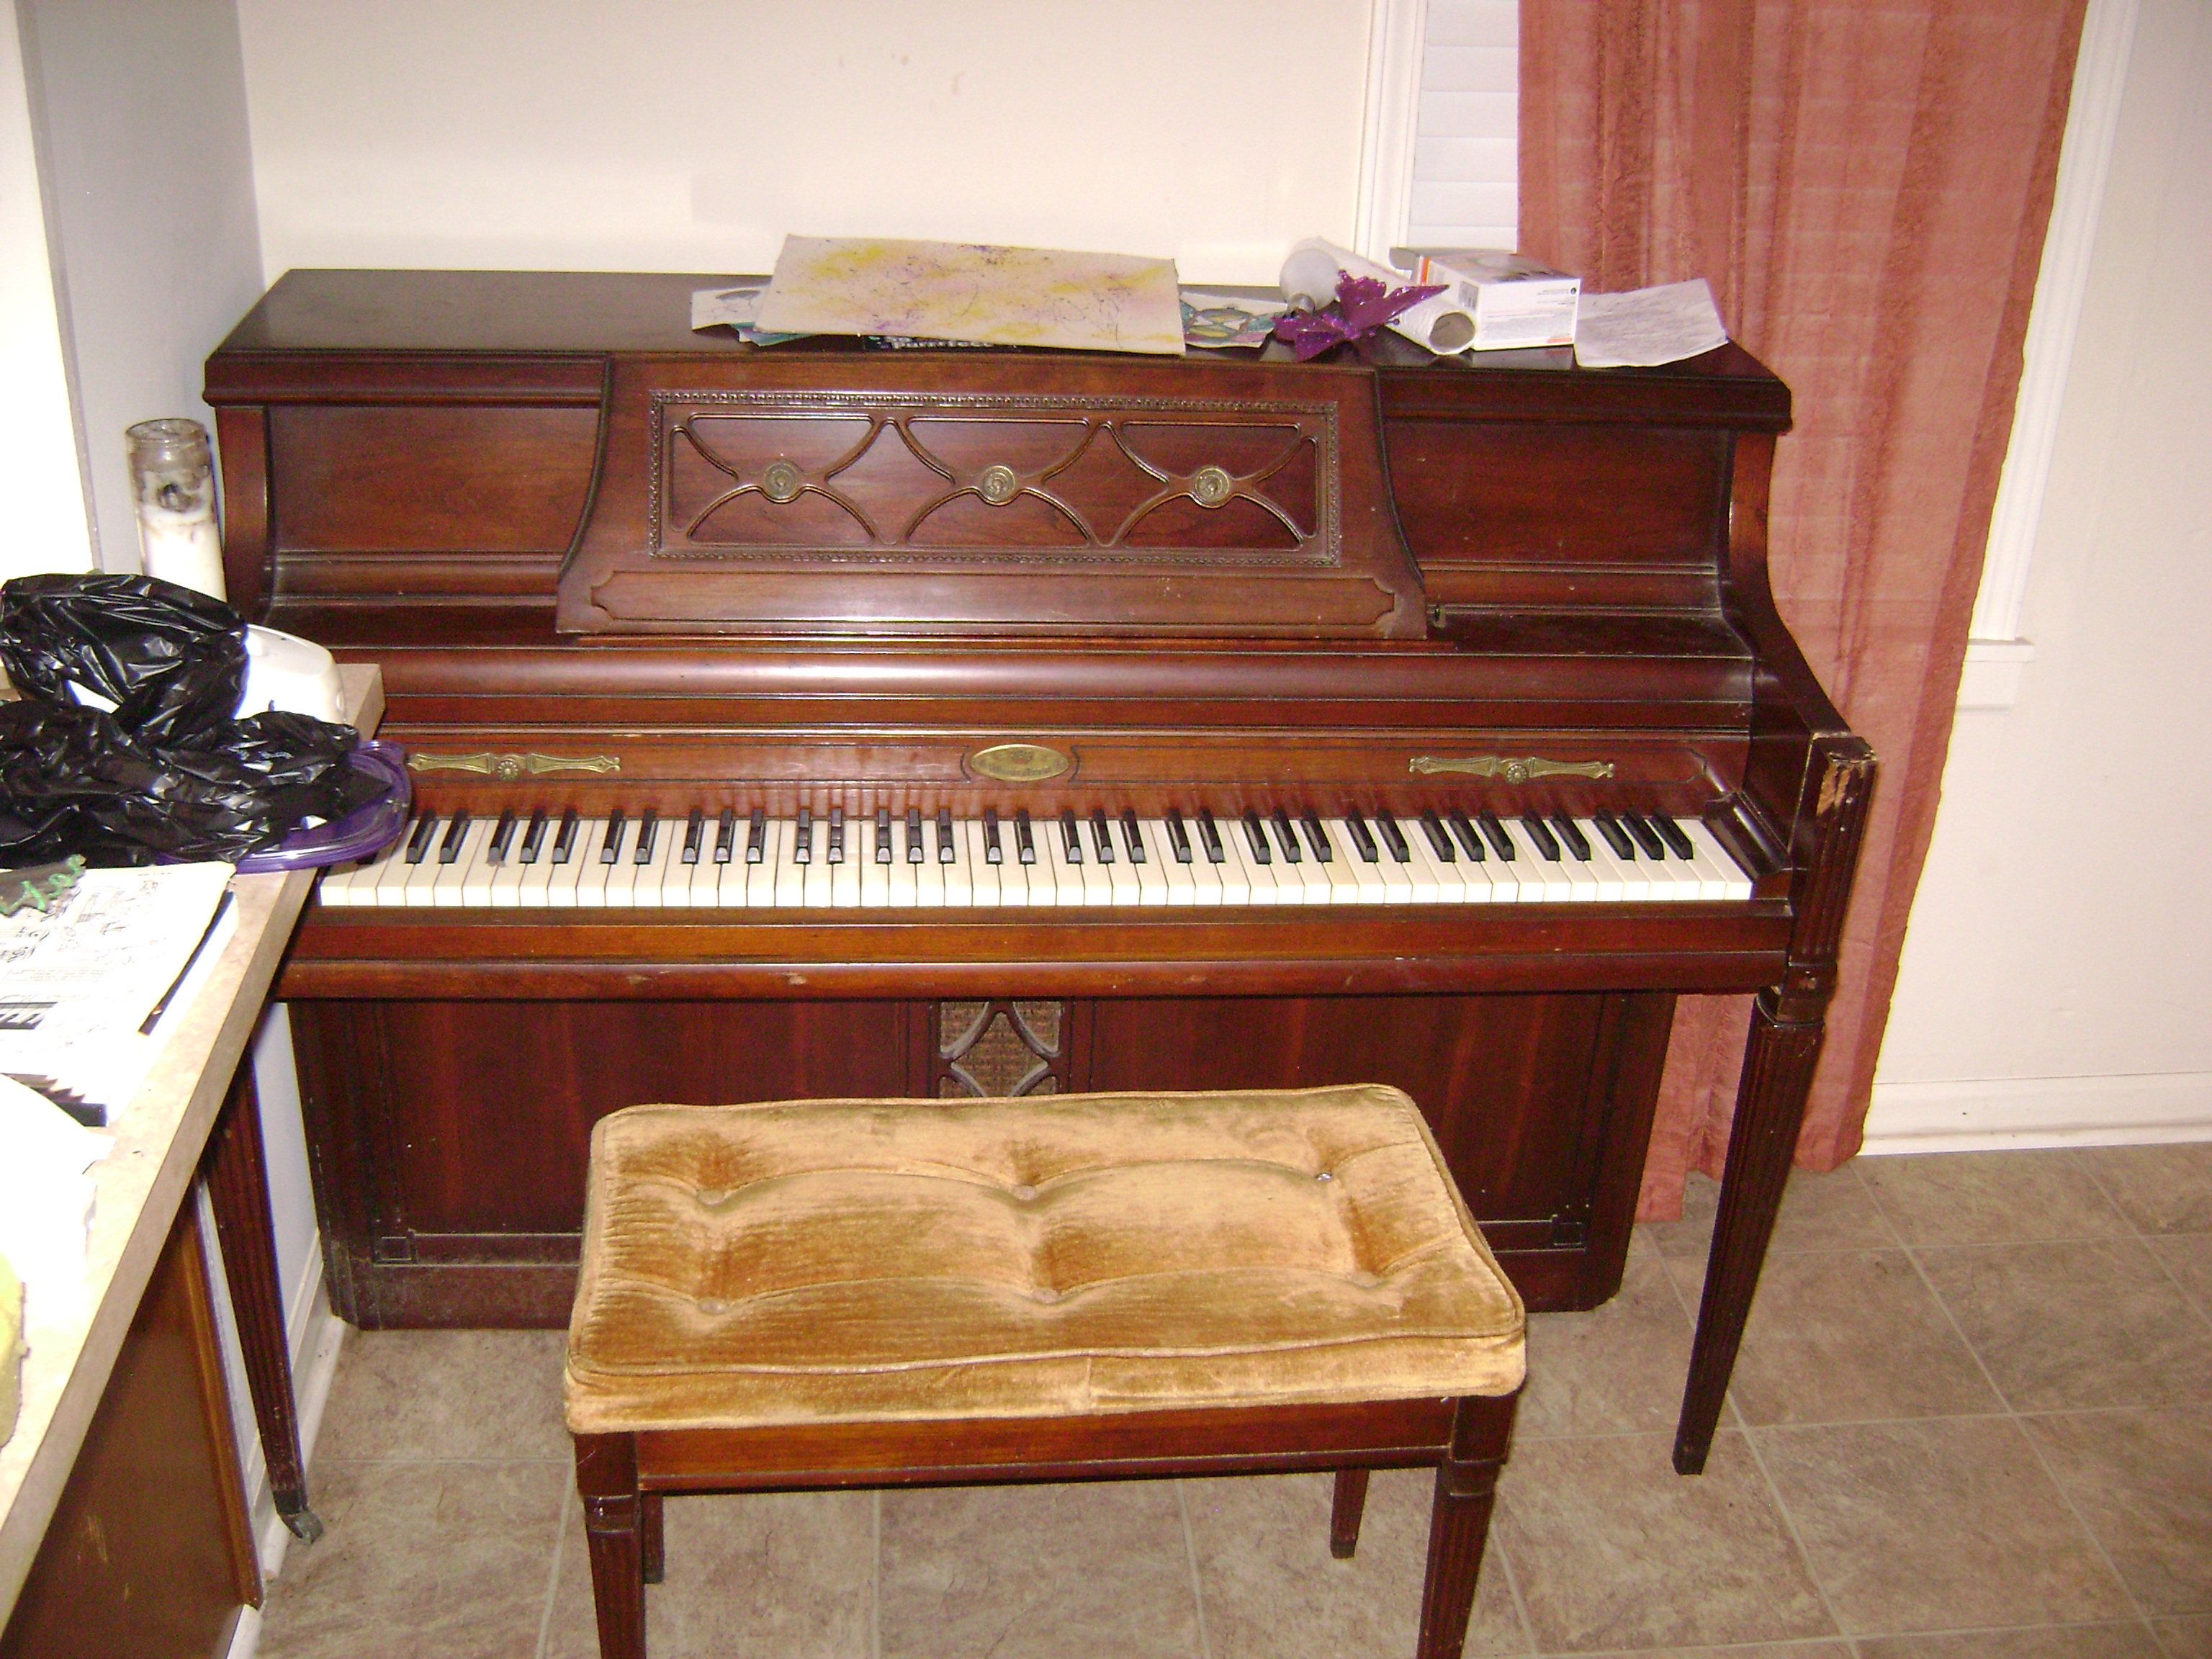 i have a wurlitzer model 2860 serial numberthat was left behind in a rental house where the. Black Bedroom Furniture Sets. Home Design Ideas